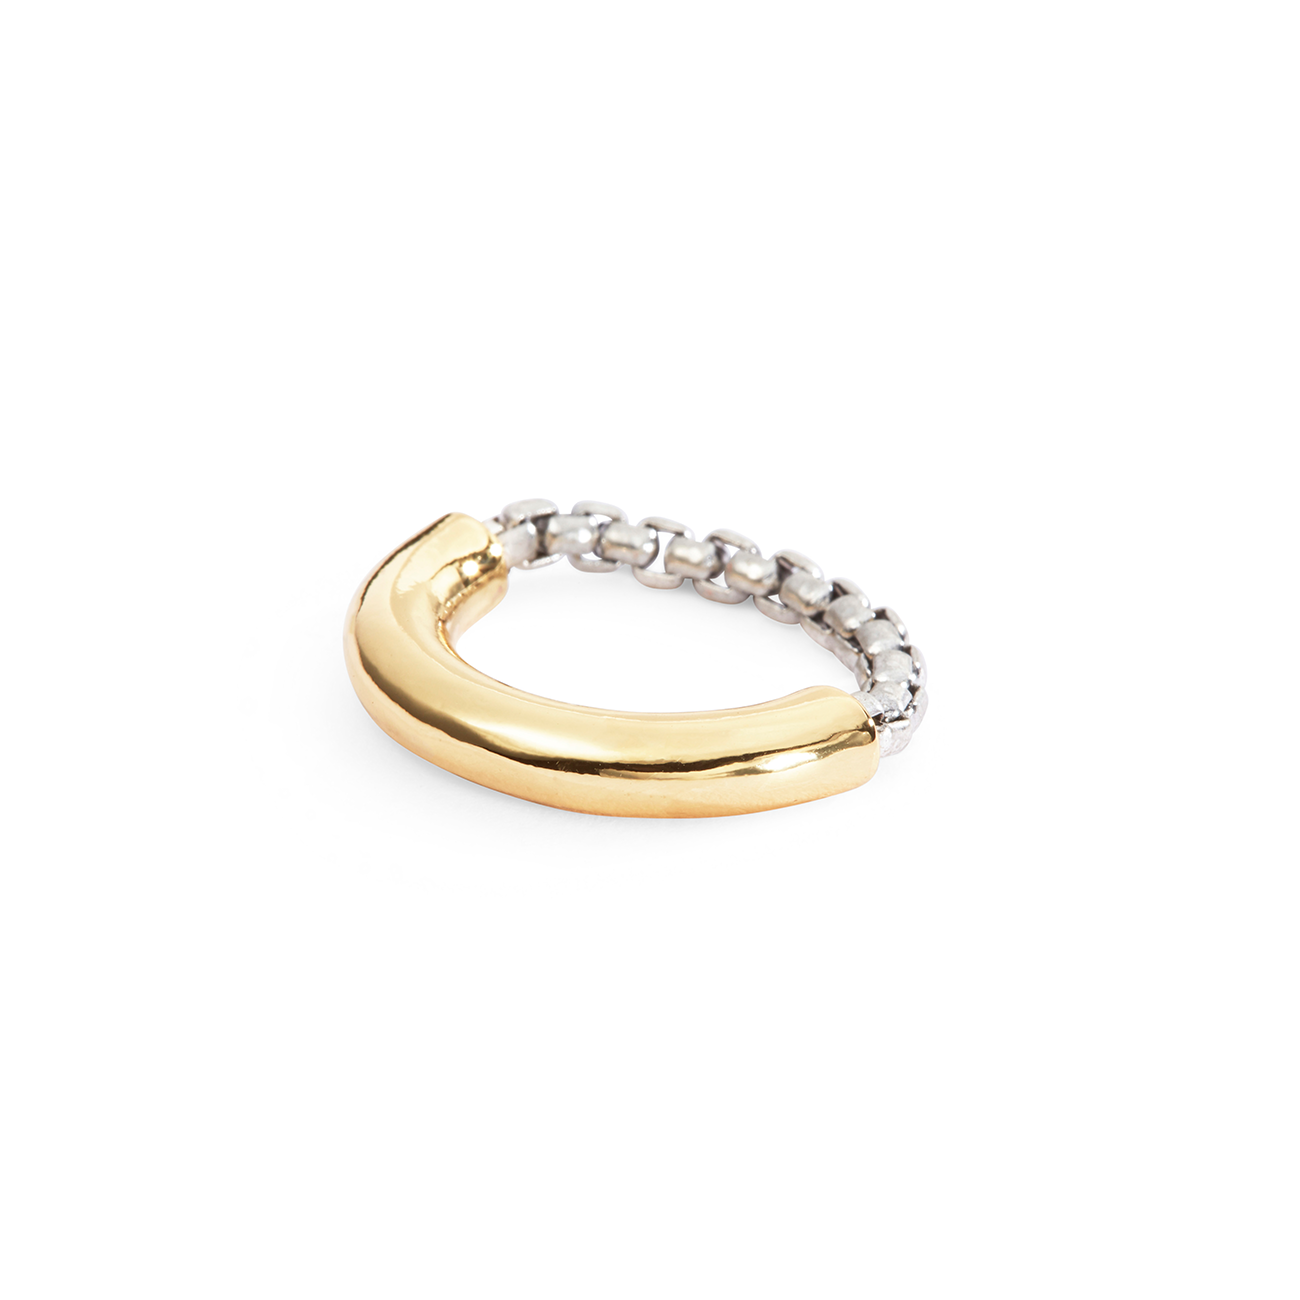 Gold and silver thick Amelia Ring by Jenny Bird